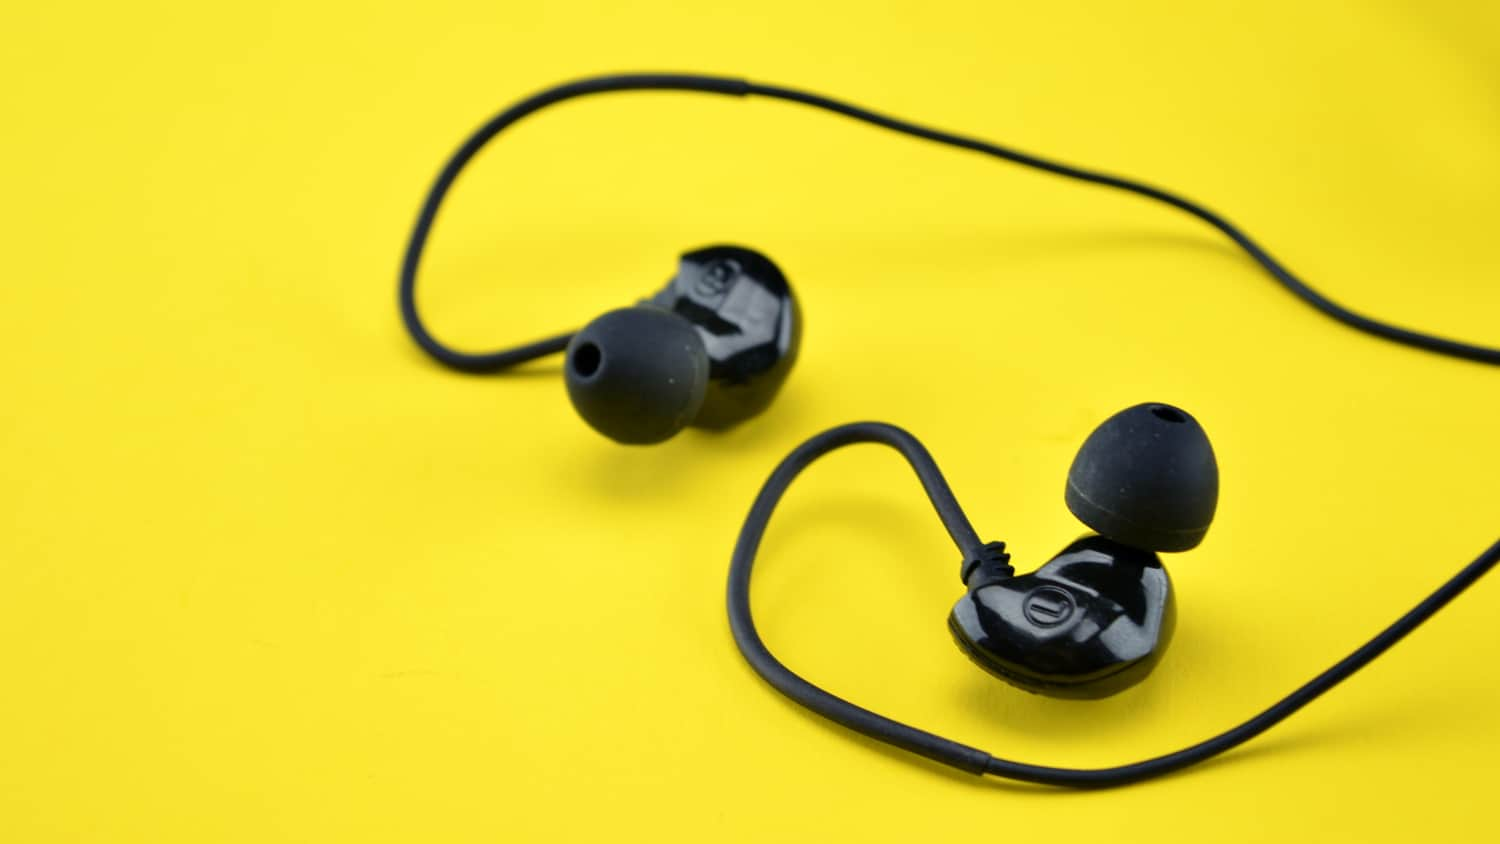 The Brainwavz Audio B200 earbuds are some of the best around, even with a few compromises.